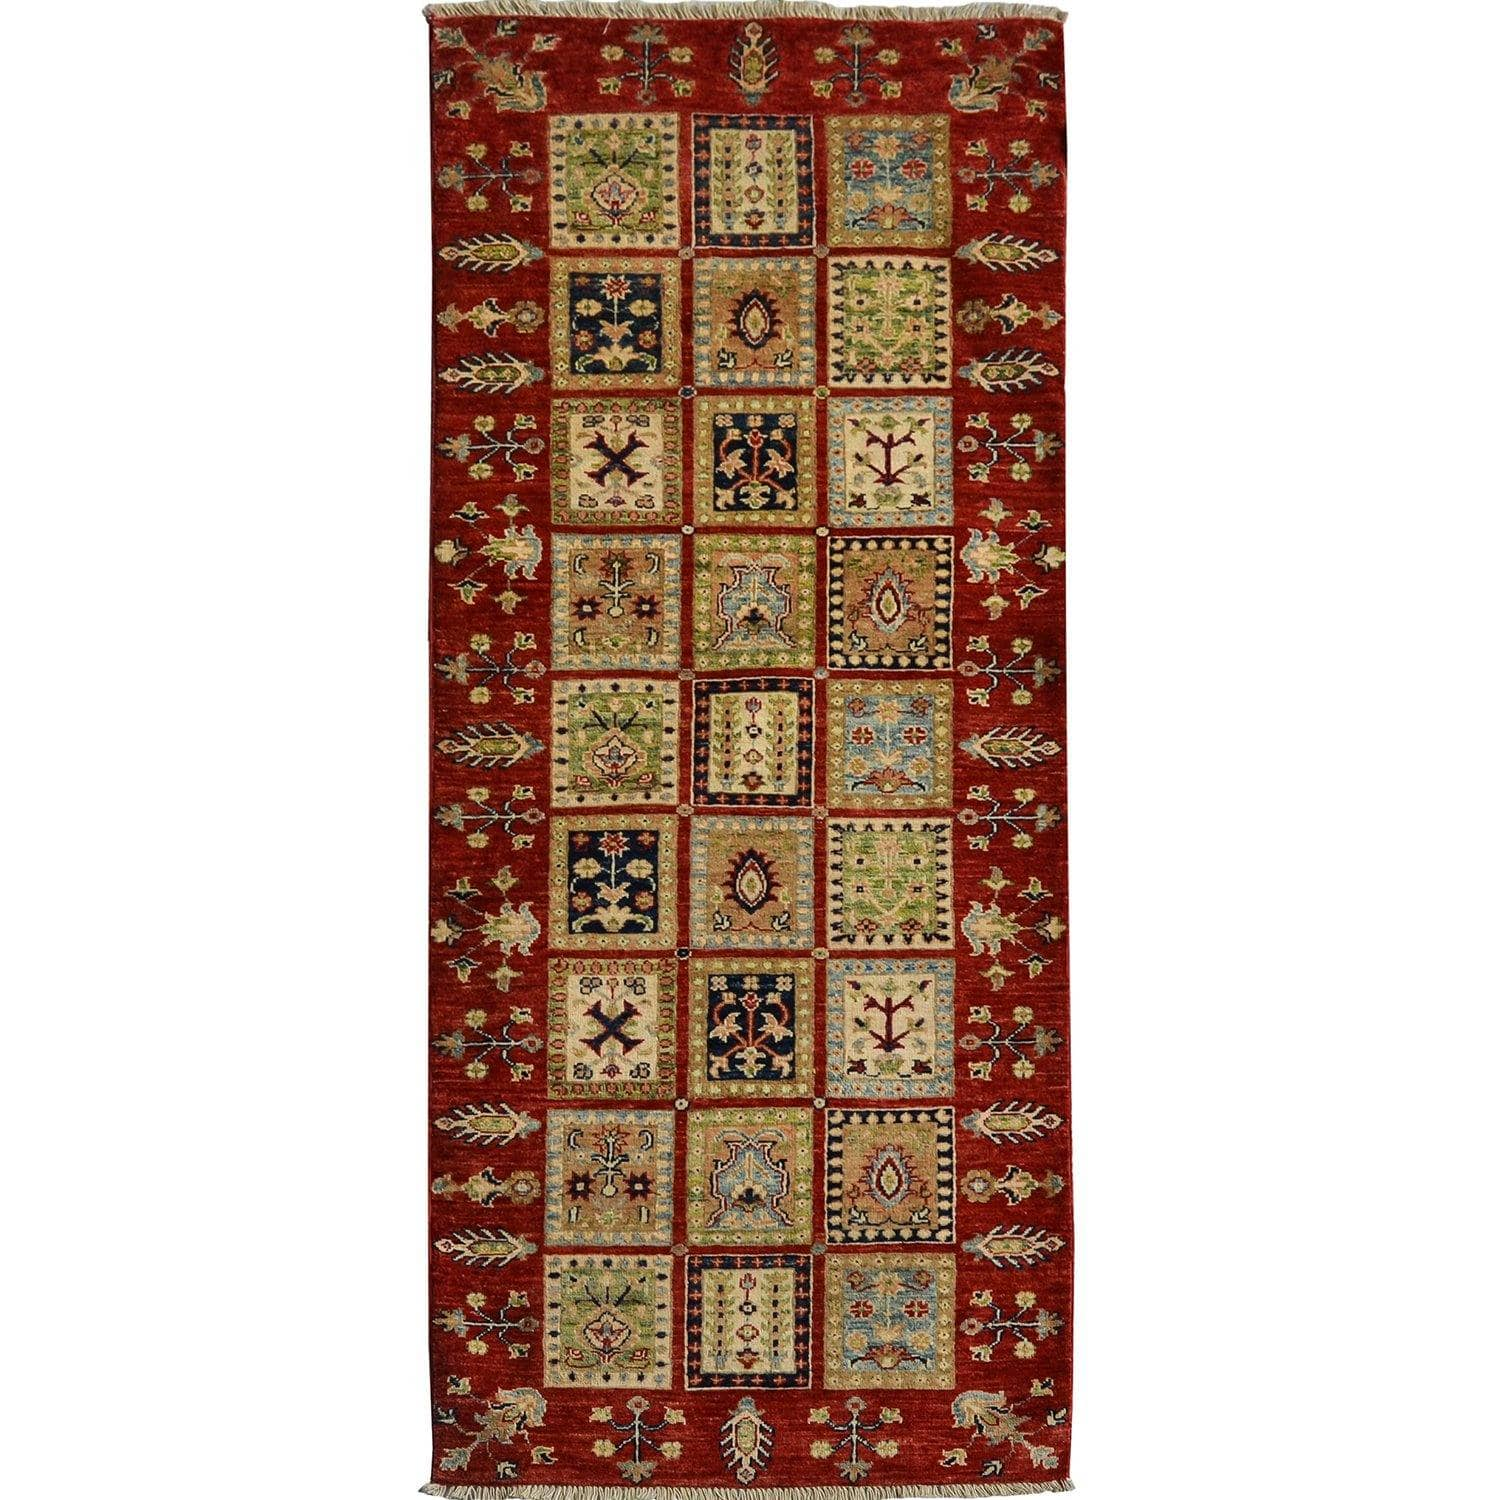 Fine Hand-knotted Tribal Wool Bakhtiari Runner 79cm x 208cm Persian-Rug | House-of-Haghi | NewMarket | Auckland | NZ | Handmade Persian Rugs | Hand Knotted Persian Rugs